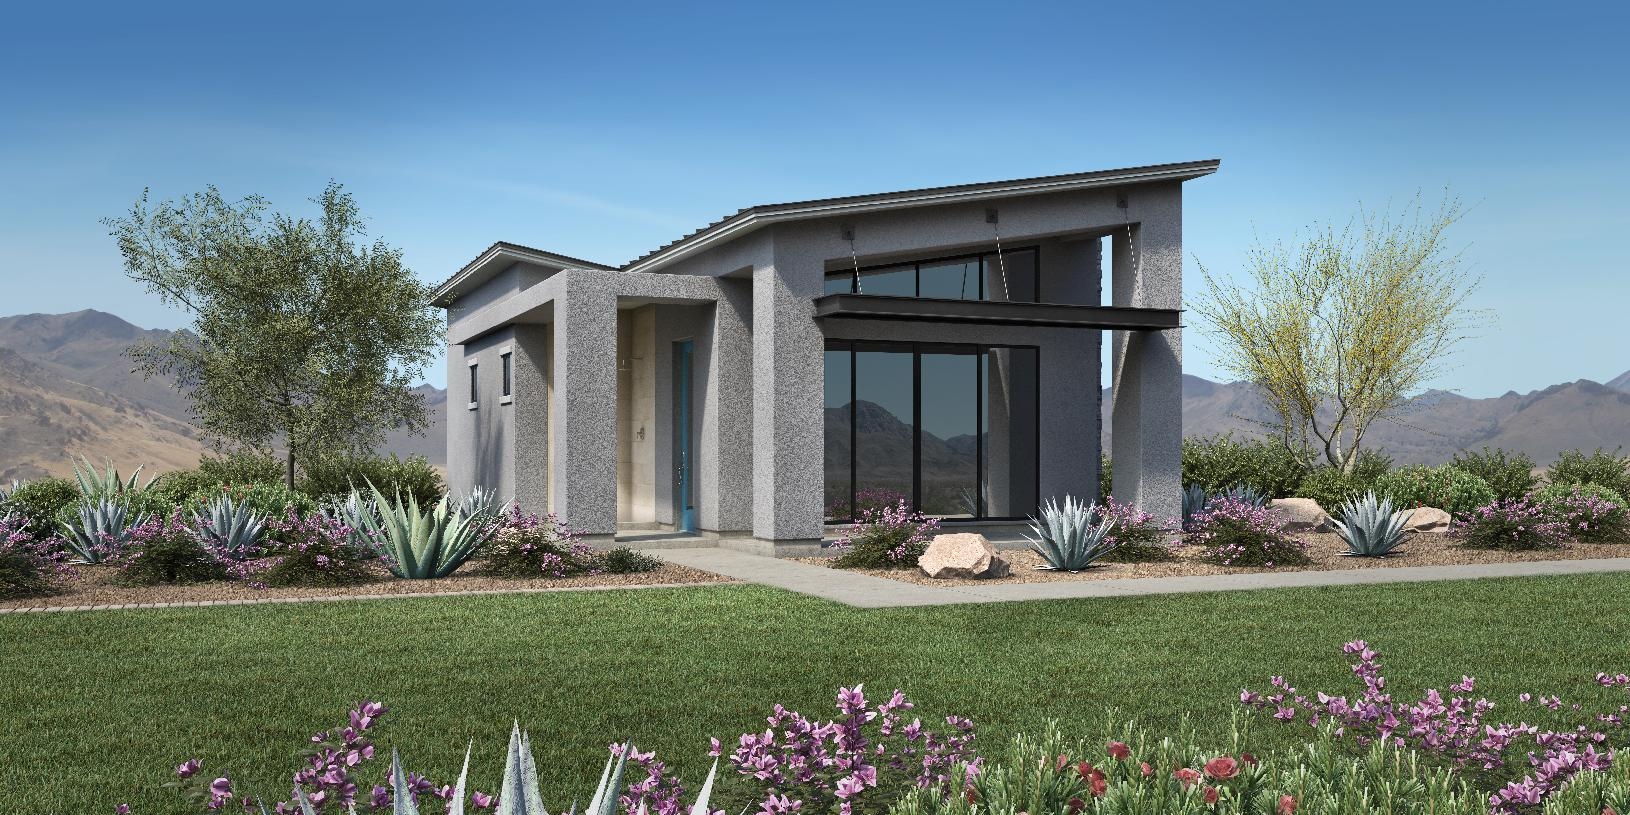 Optional detached guest casita available with Farmhouse, Desert Contemporary and Modern exteriors